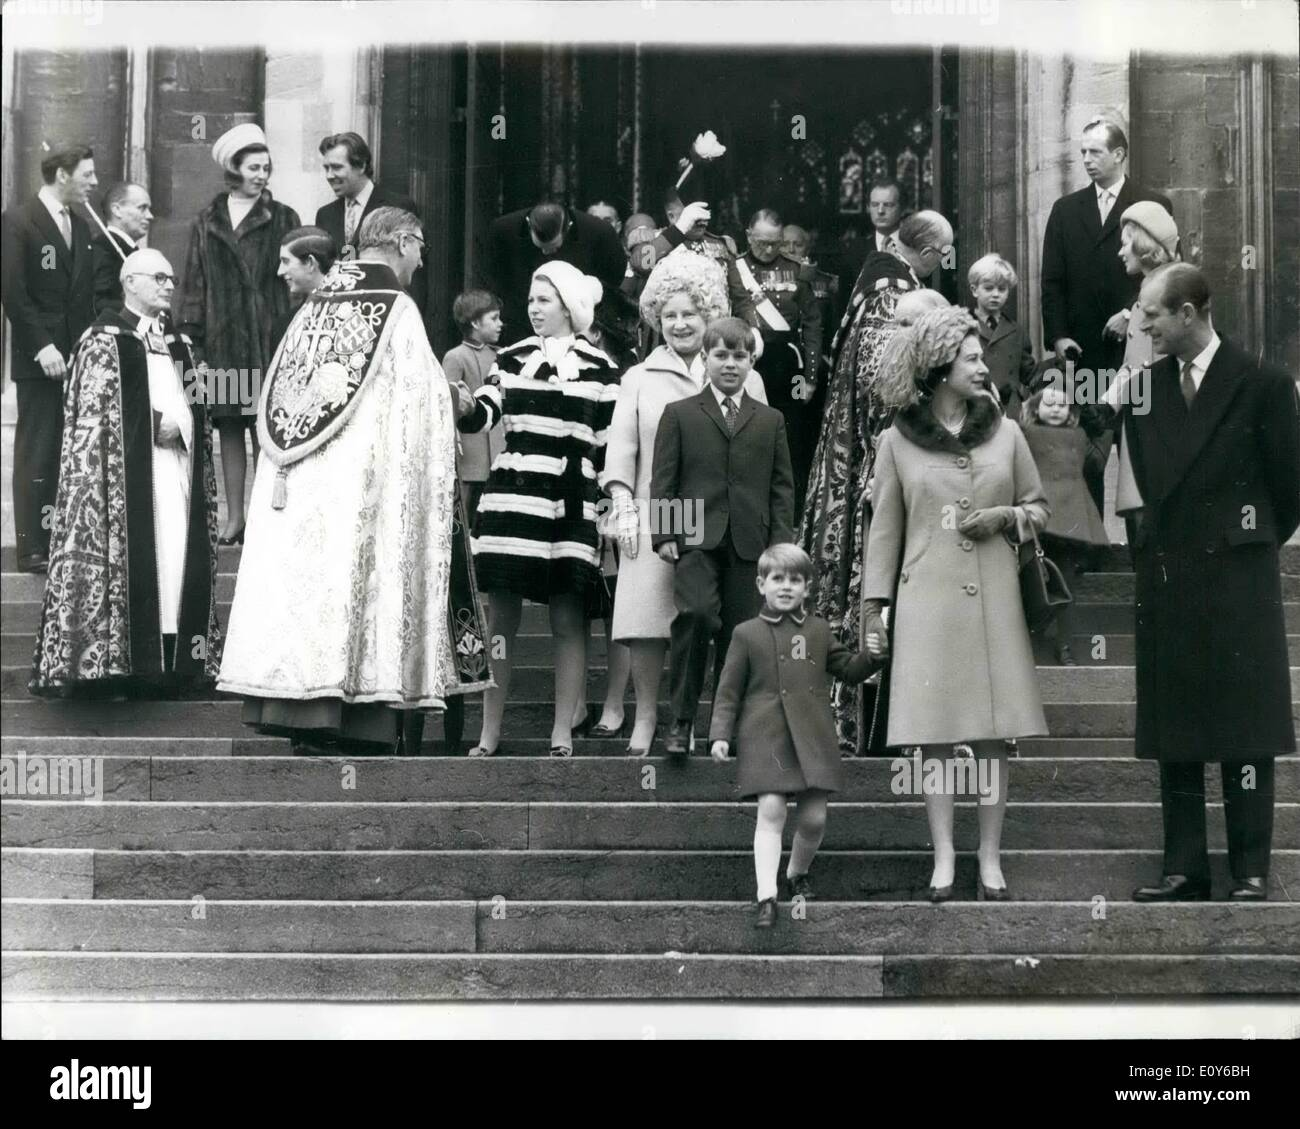 Dec. 12, 1968 - Royal family at Christmas service. members of the Royal Family leave St. George chapel Winsor on Christmas morning, after attending Christmas service there. In foreground Queen Elizabeth II hold the hand of her youngest son Price Edward, as she talks to her Husband Prince Phillip. Behind Prince Edward is Prince Andrew with his grandmother. Queen Elizabeth the Queen mother, while his sister Princess Anne shakes hands with Unidentified prelate. At top far left Angus Orgildy with his wife Princess Alexandra of Kent who is talking to Lord Snowdon - Stock Image